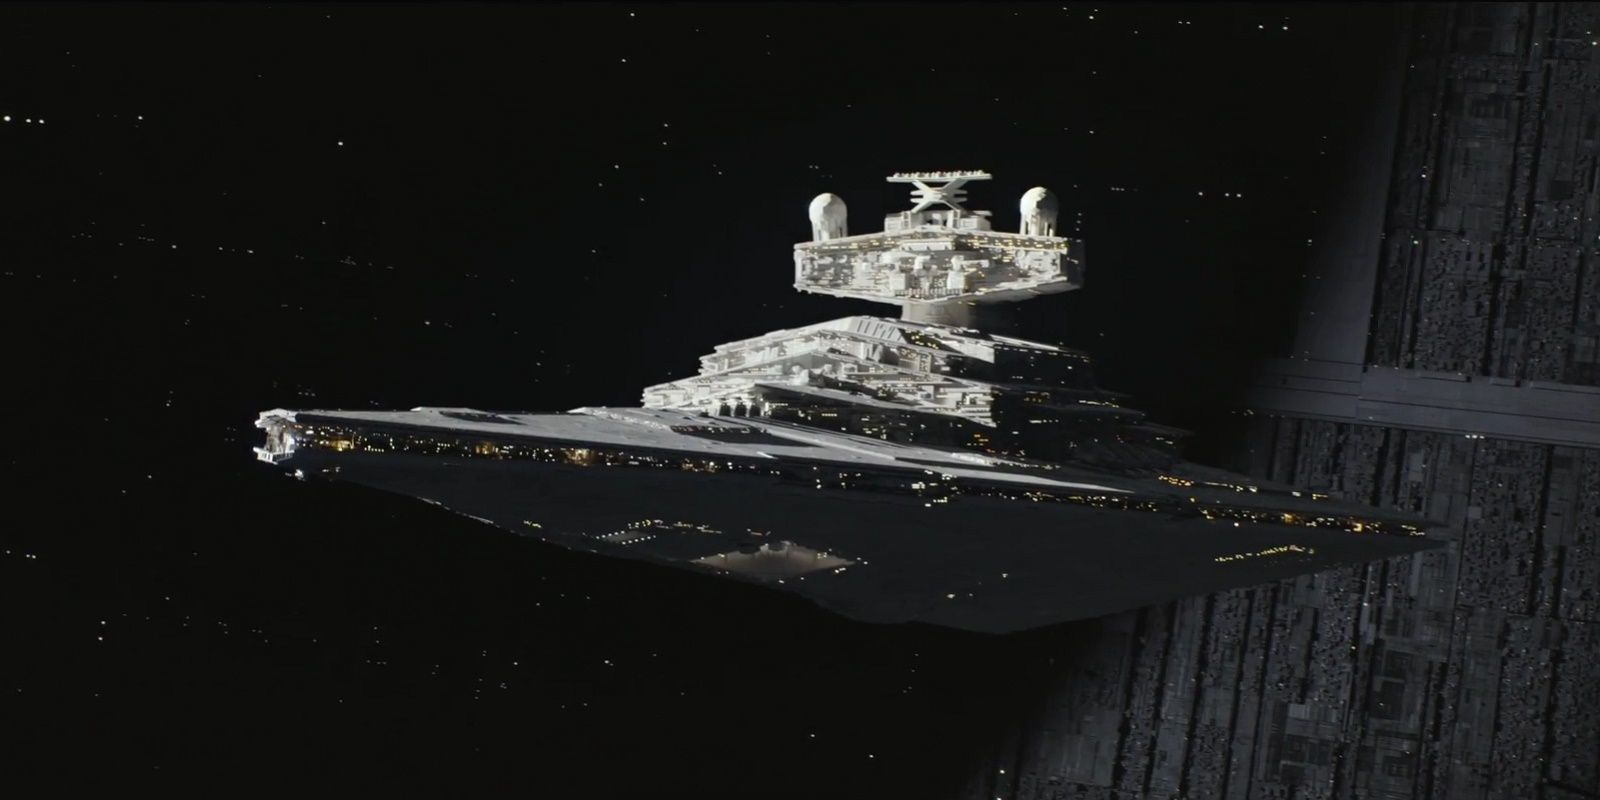 Star Destroyer by Death Star - Rogue One: A Star Wars Story